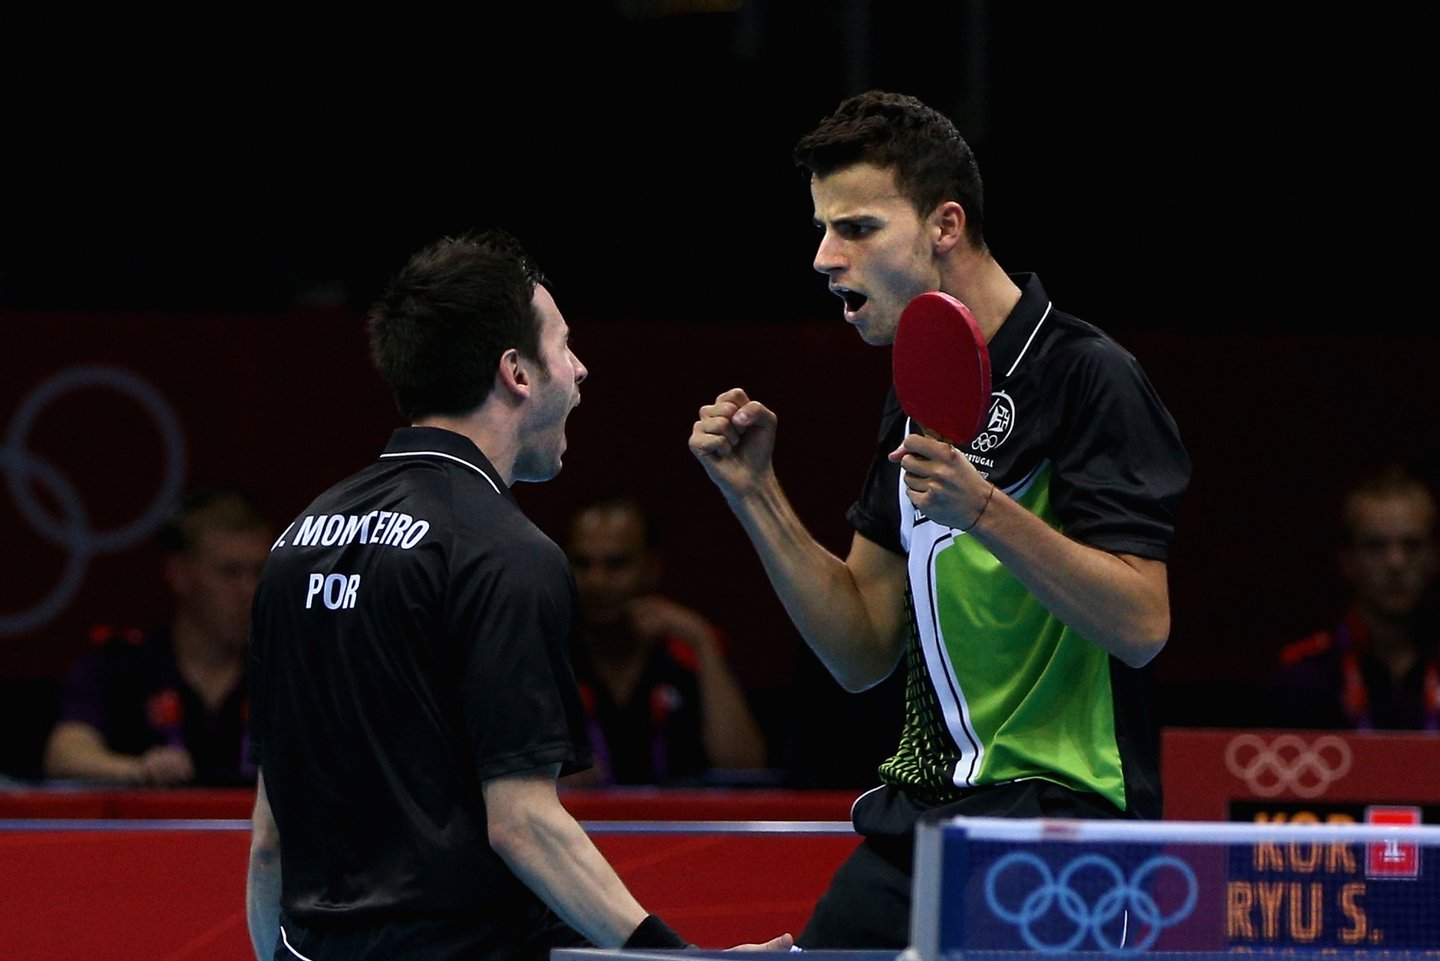 LONDON, ENGLAND - AUGUST 05: Joao Monteiro and Tiago Apolonia of Portugal celebrate during Men's Team Table Tennis quarterfinal match against team of Korea on Day 9 of the London 2012 Olympic Games at ExCeL on August 5, 2012 in London, England. (Photo by Feng Li/Getty Images)